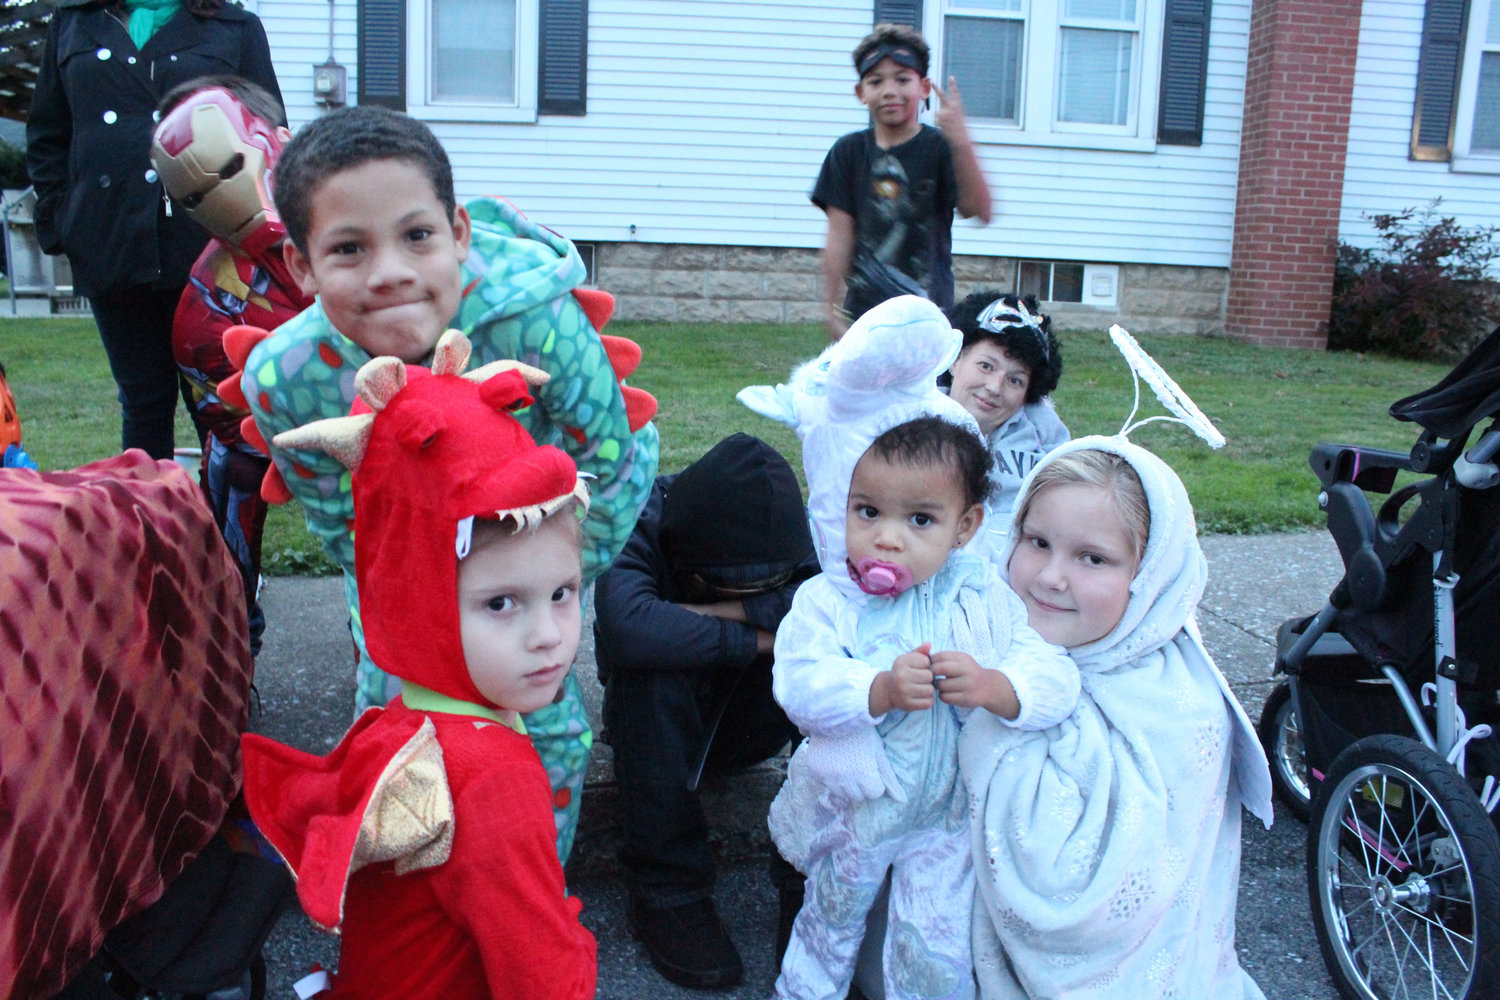 Jacob Book, Quamart Willard, Lizzy Coolidge, Ny-Taliya Deppe and Makenzie Willard dressed up for the Halloween parade.